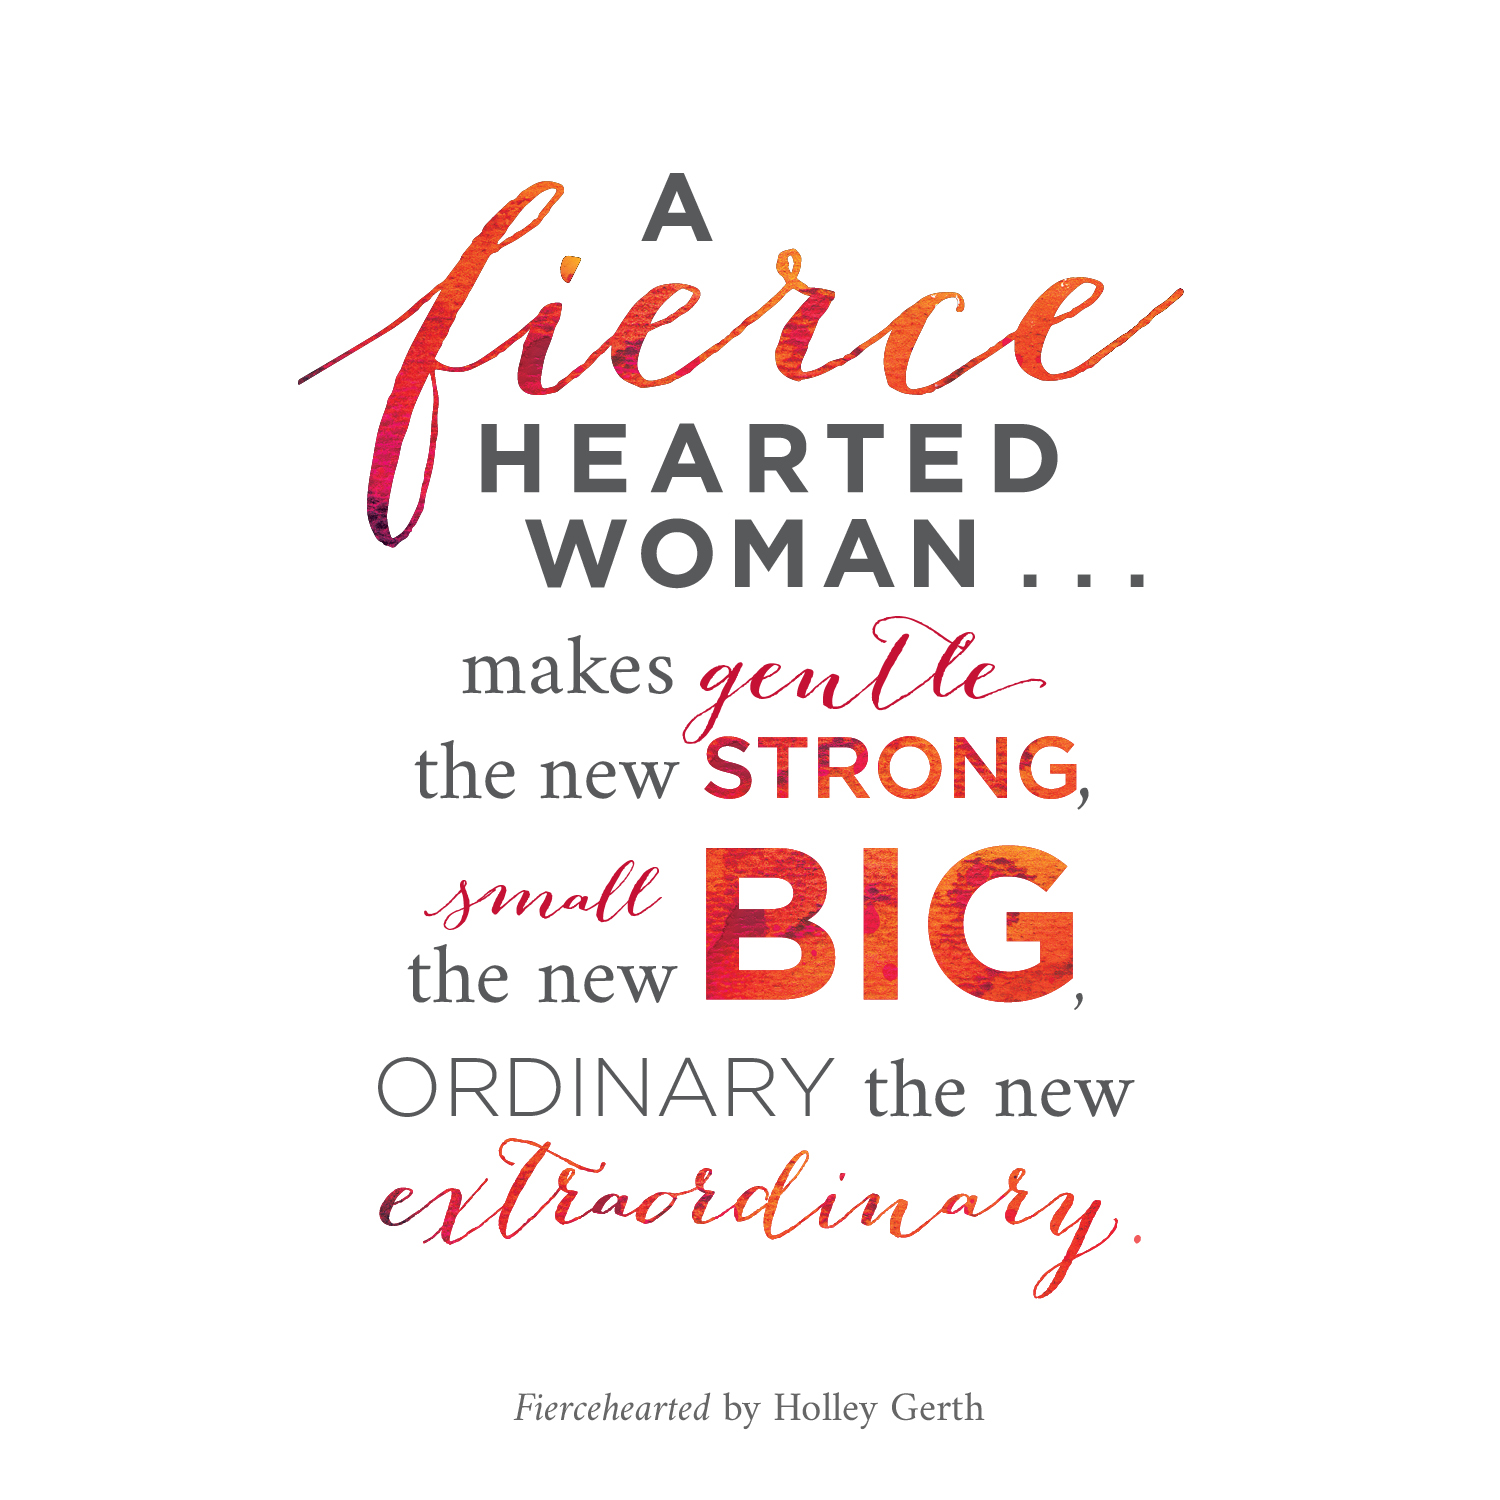 A fiercehearted woman makes gentle the new strong, small the new big, ordinary the new extraordinary.